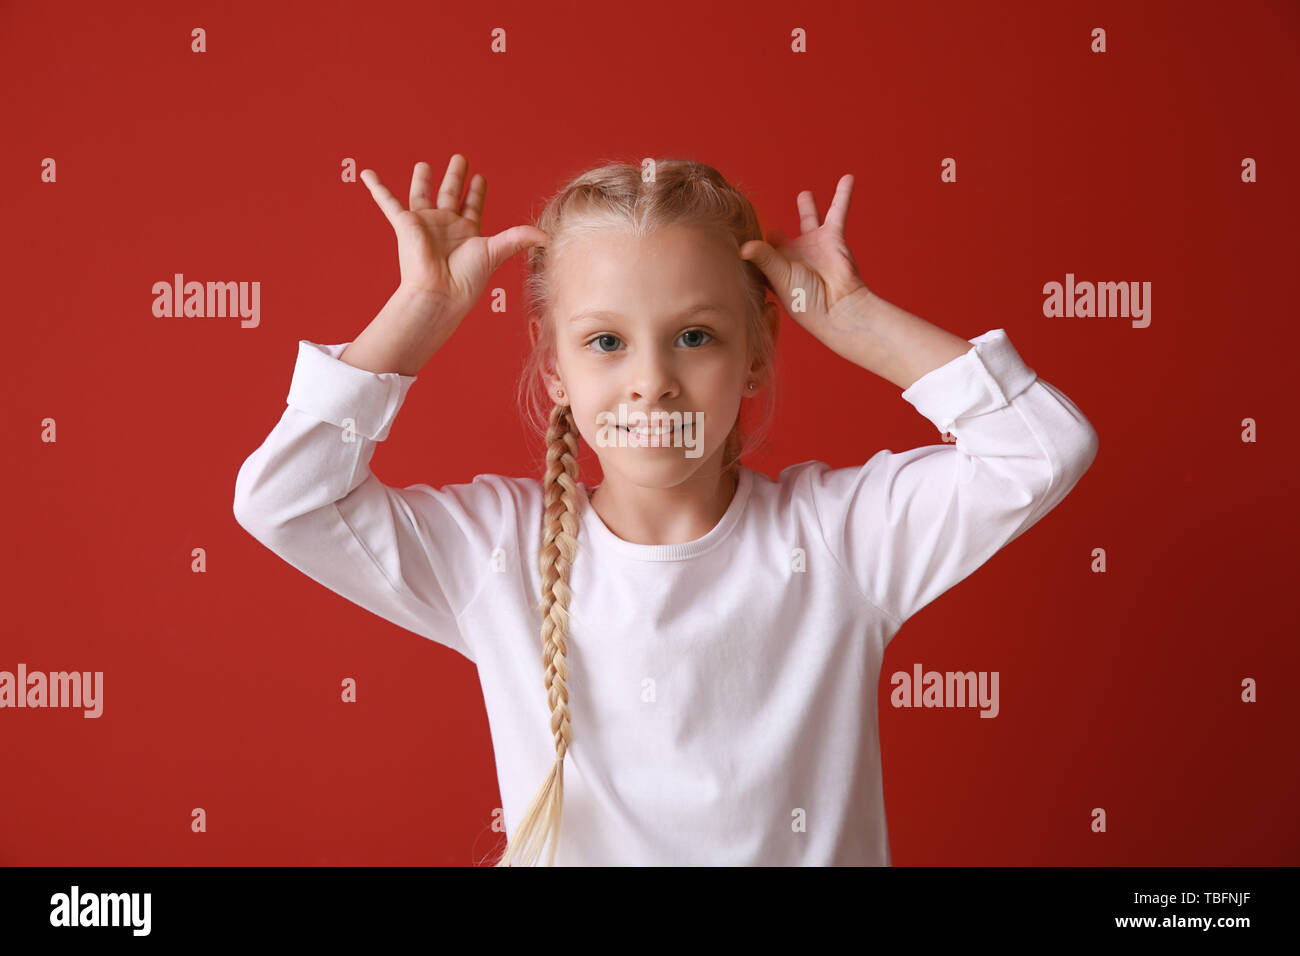 Funny grimacing little girl on color background - Stock Image